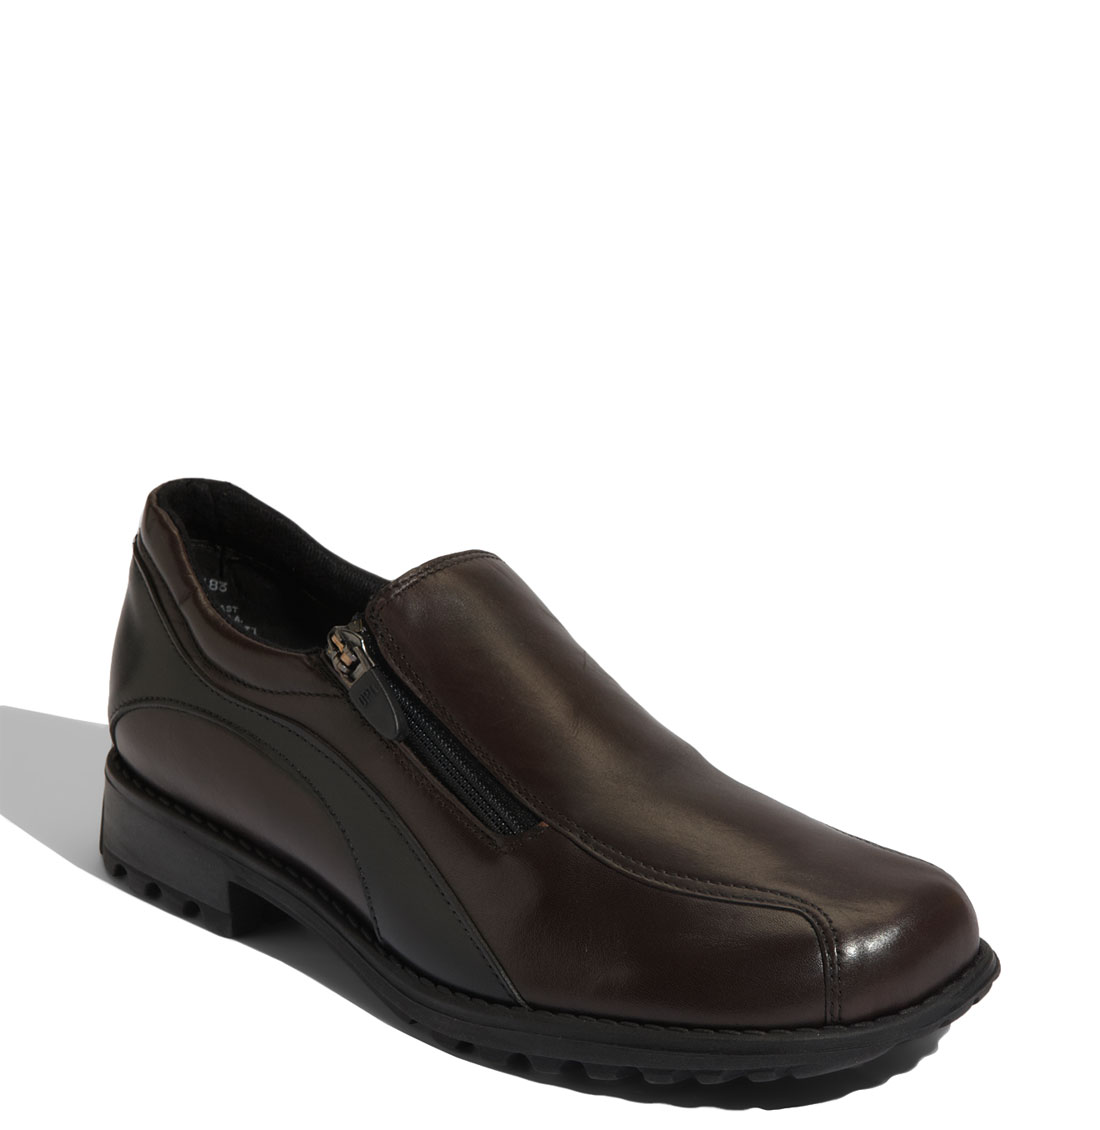 Munro Shoes On Sale